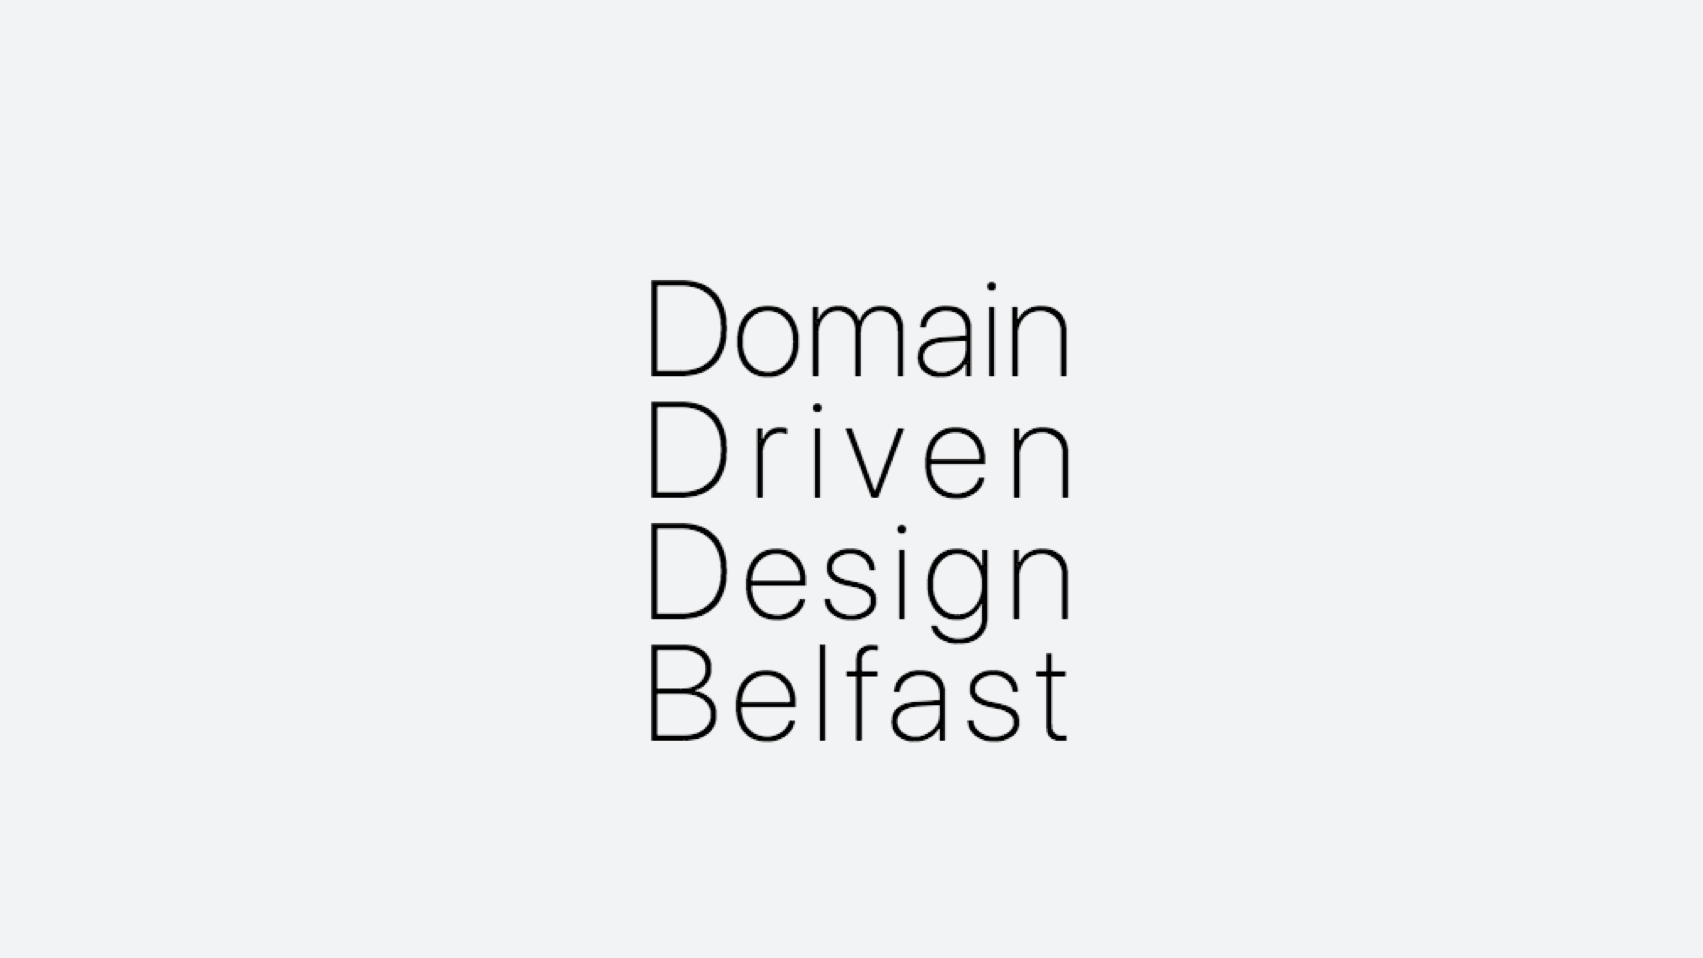 Domain Driven Design Belfast